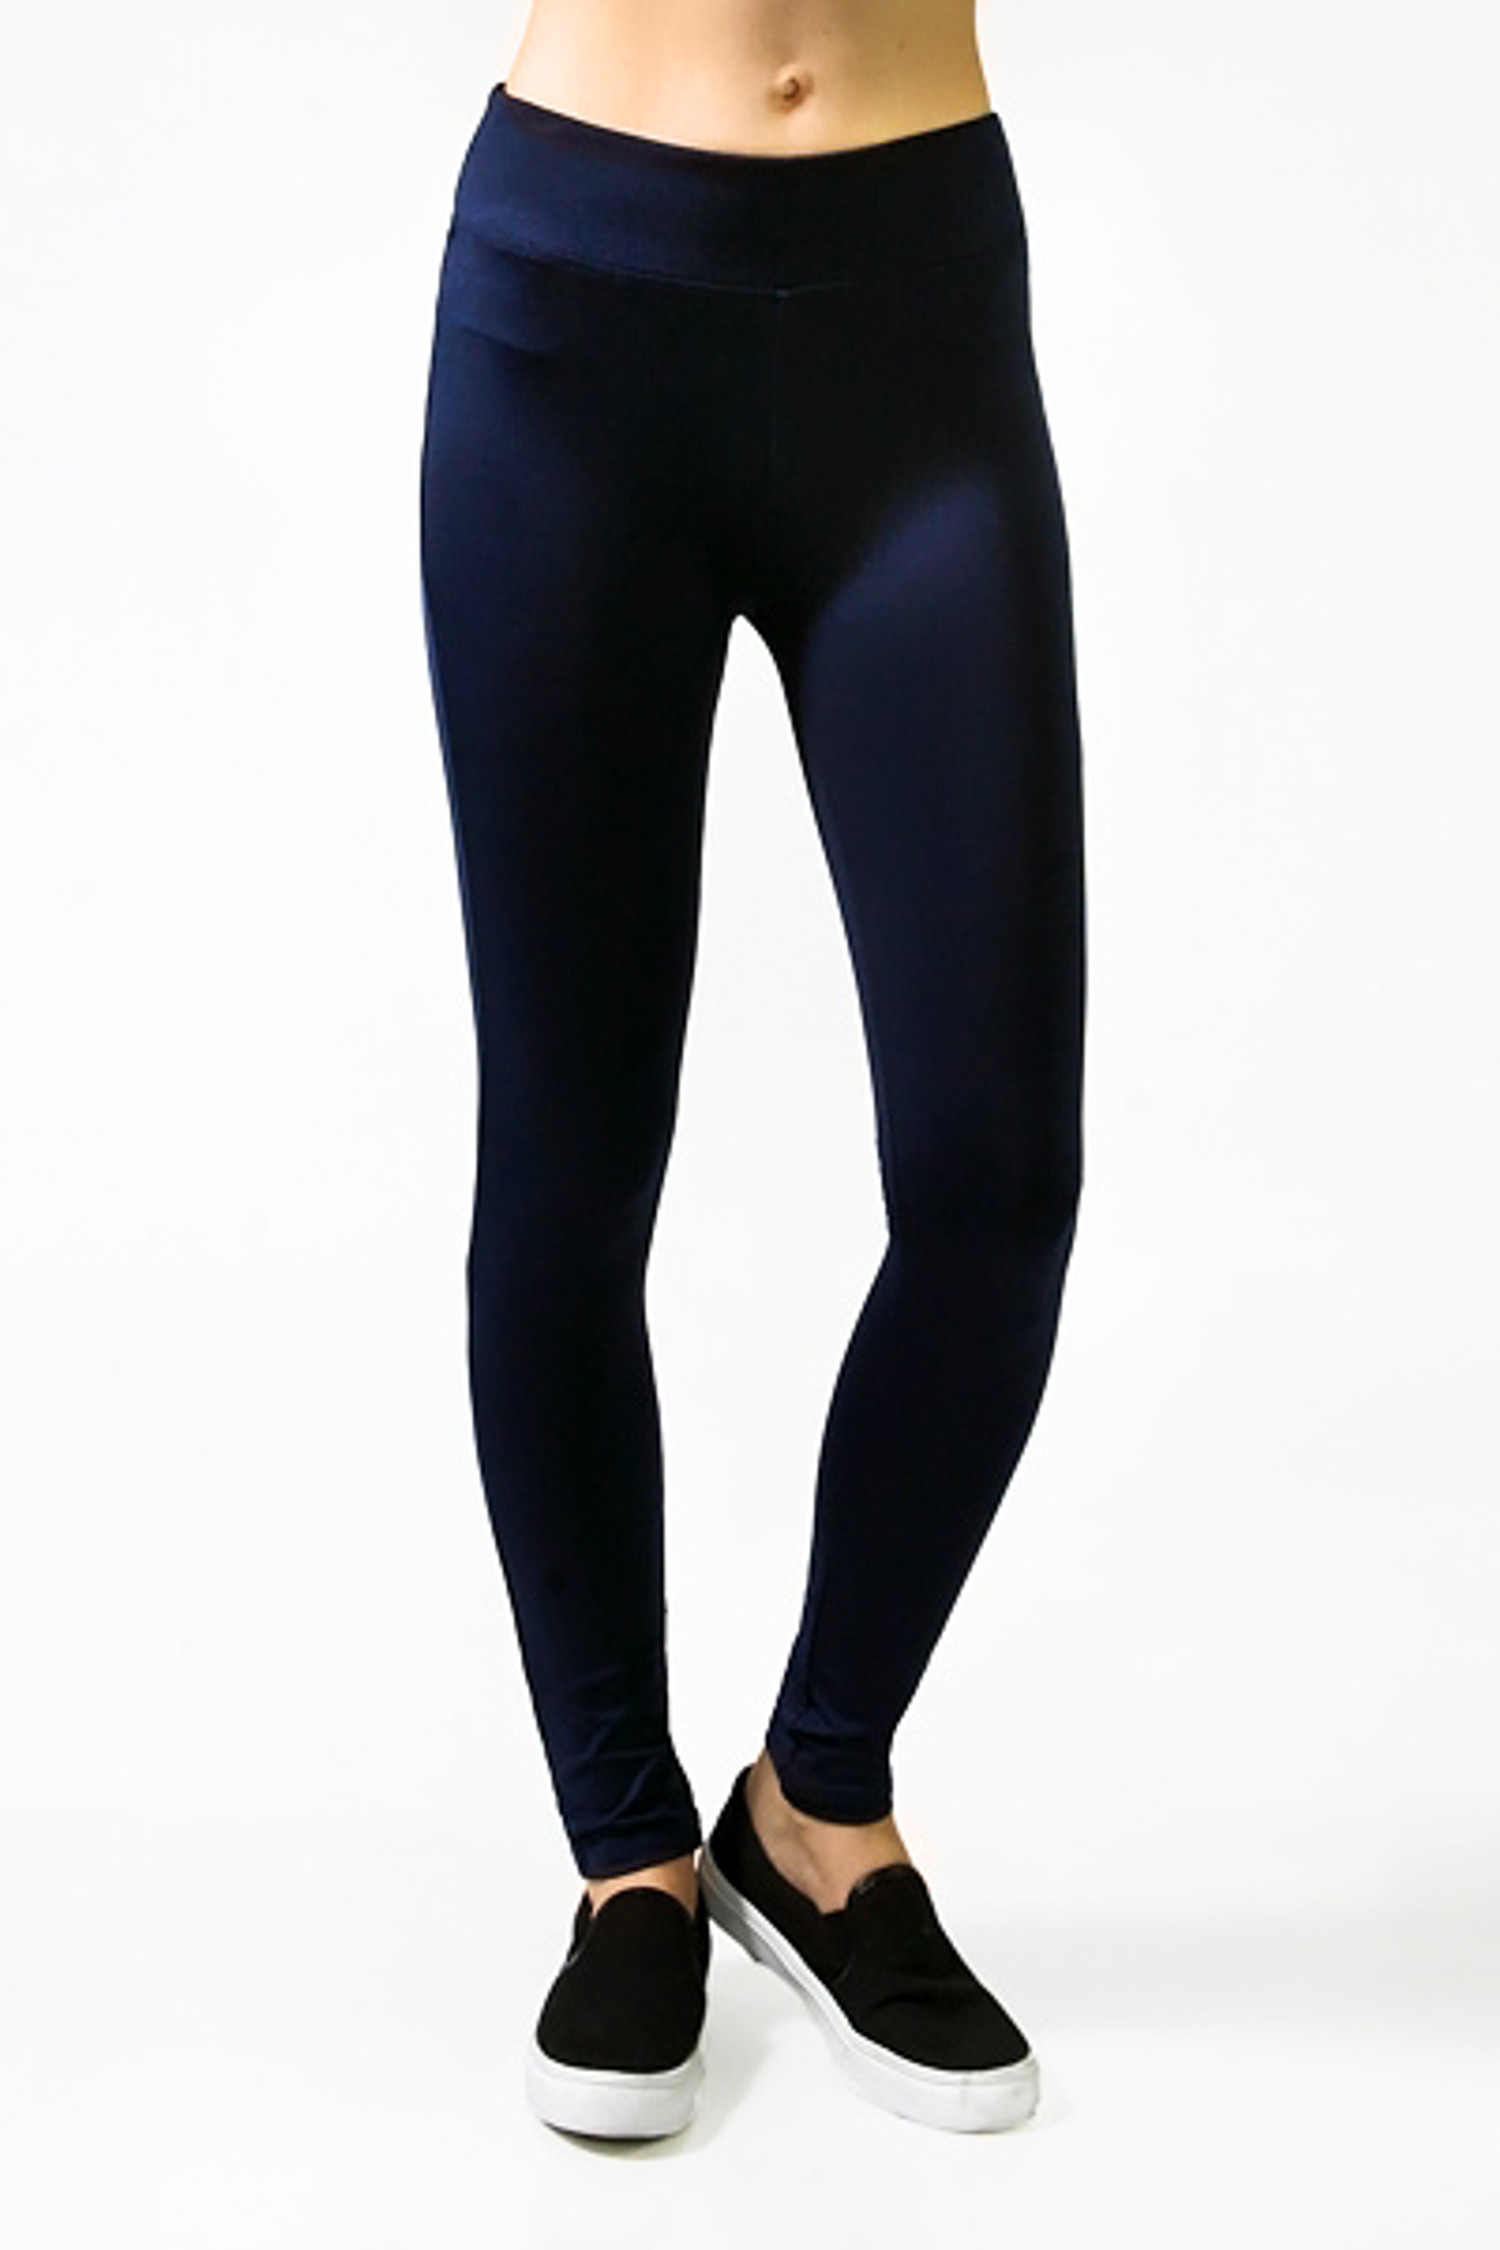 Back Pocket Zipper Fitness Leggings